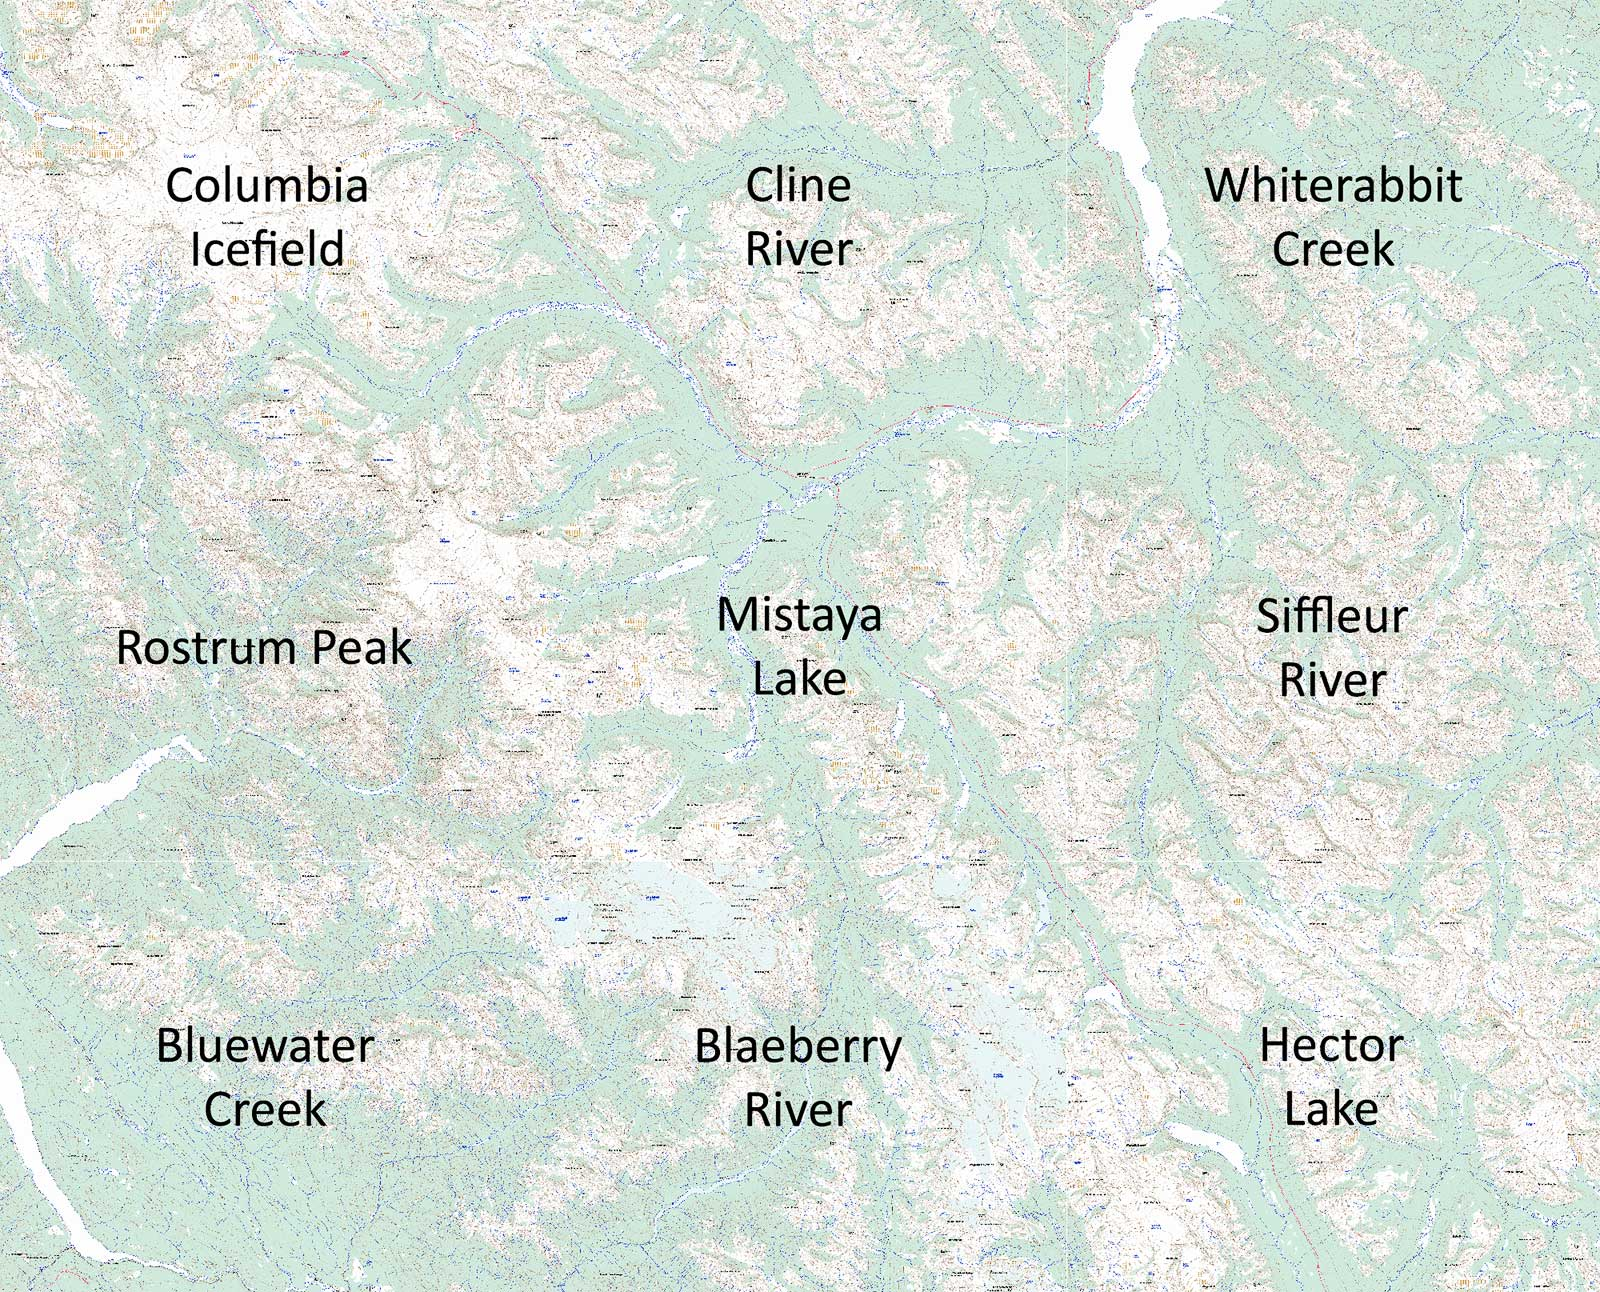 Icefields Parkway Topo Maps